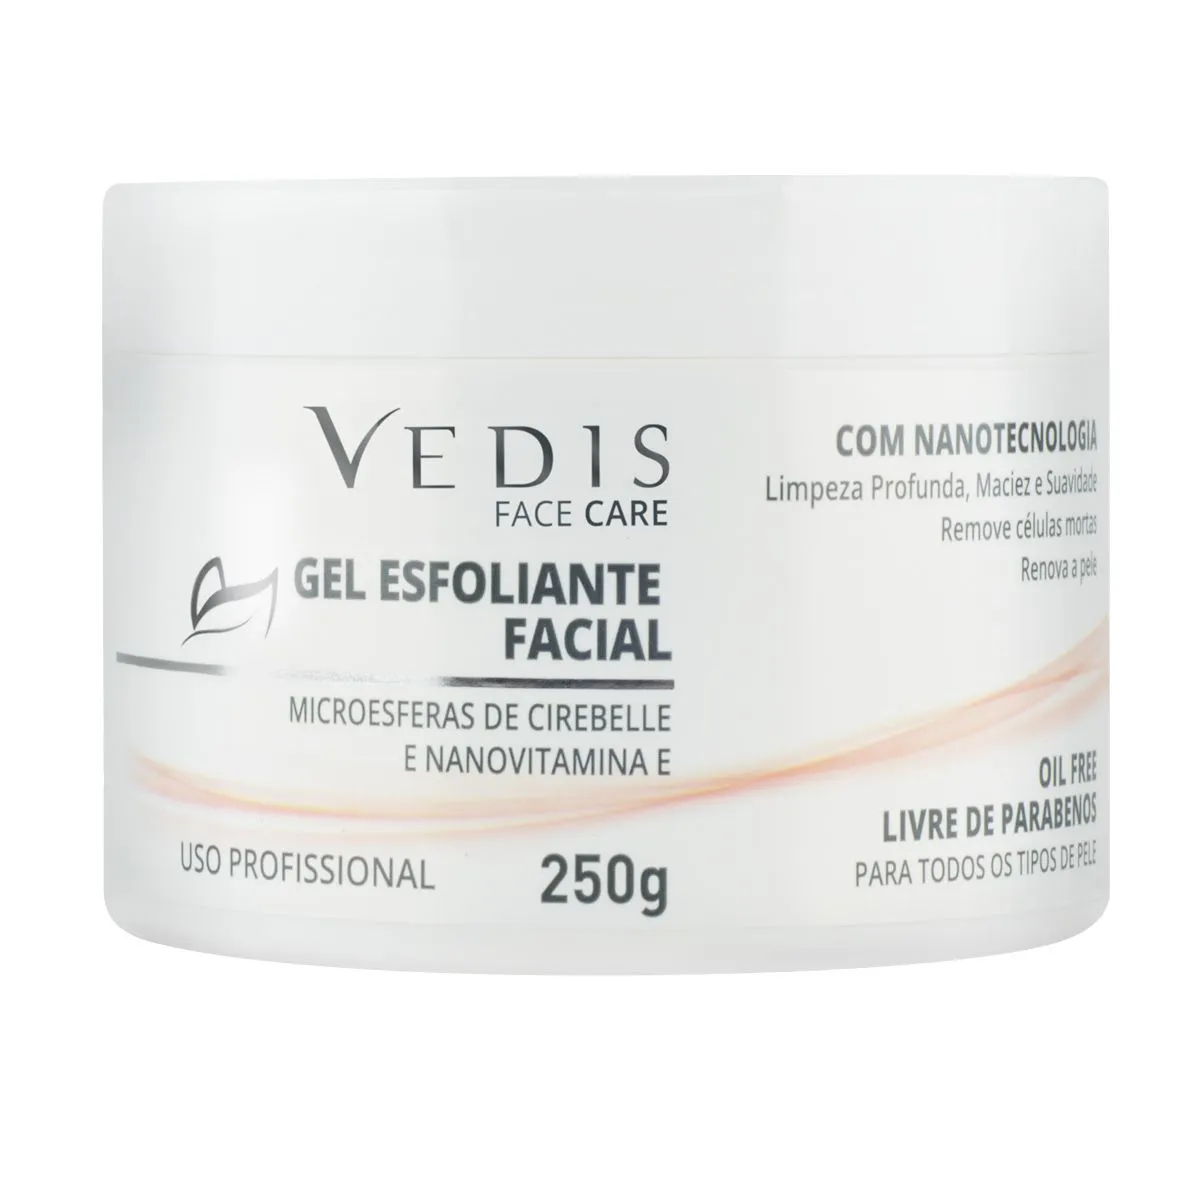 Gel Esfoliante Facial 250g - Vedis